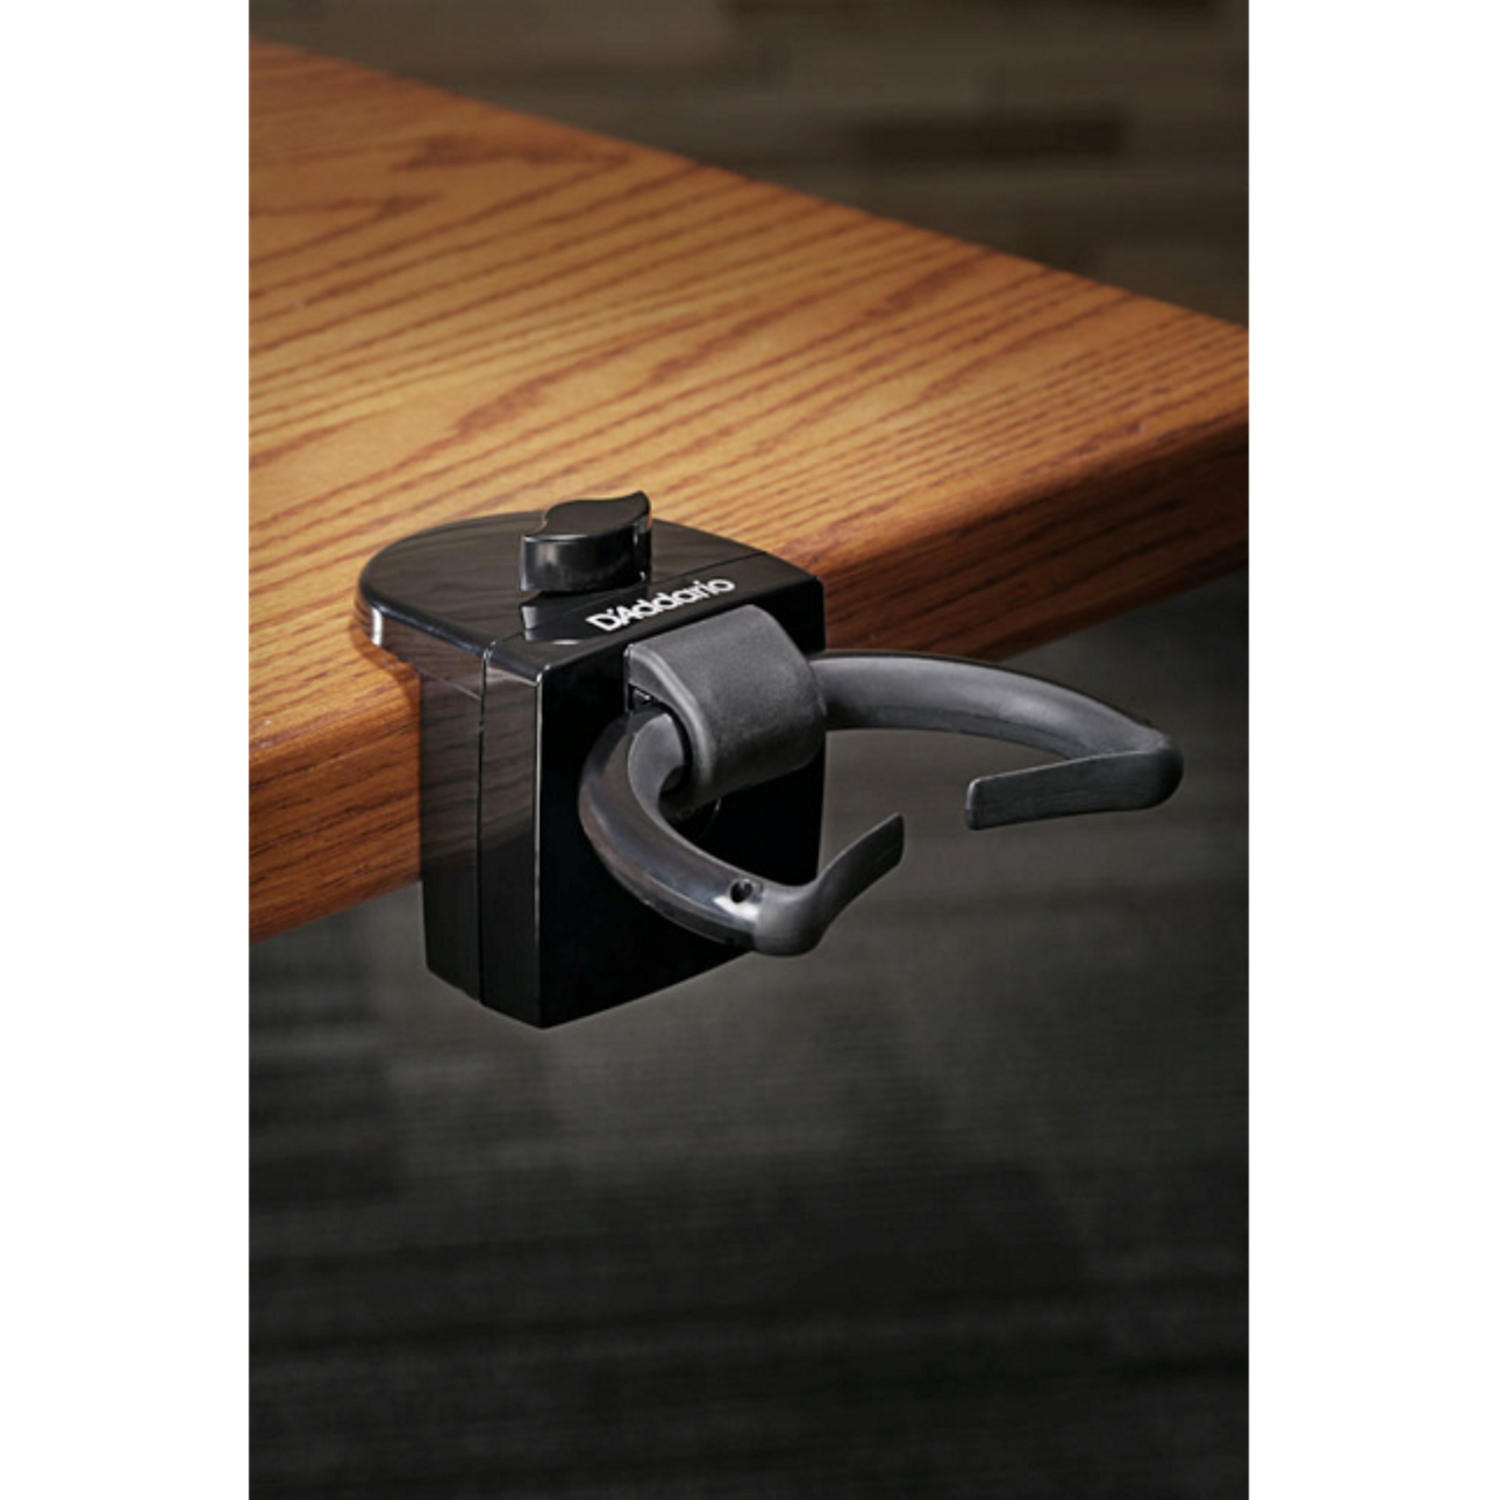 DAddario Guitar Dock PW-GD-01 278265